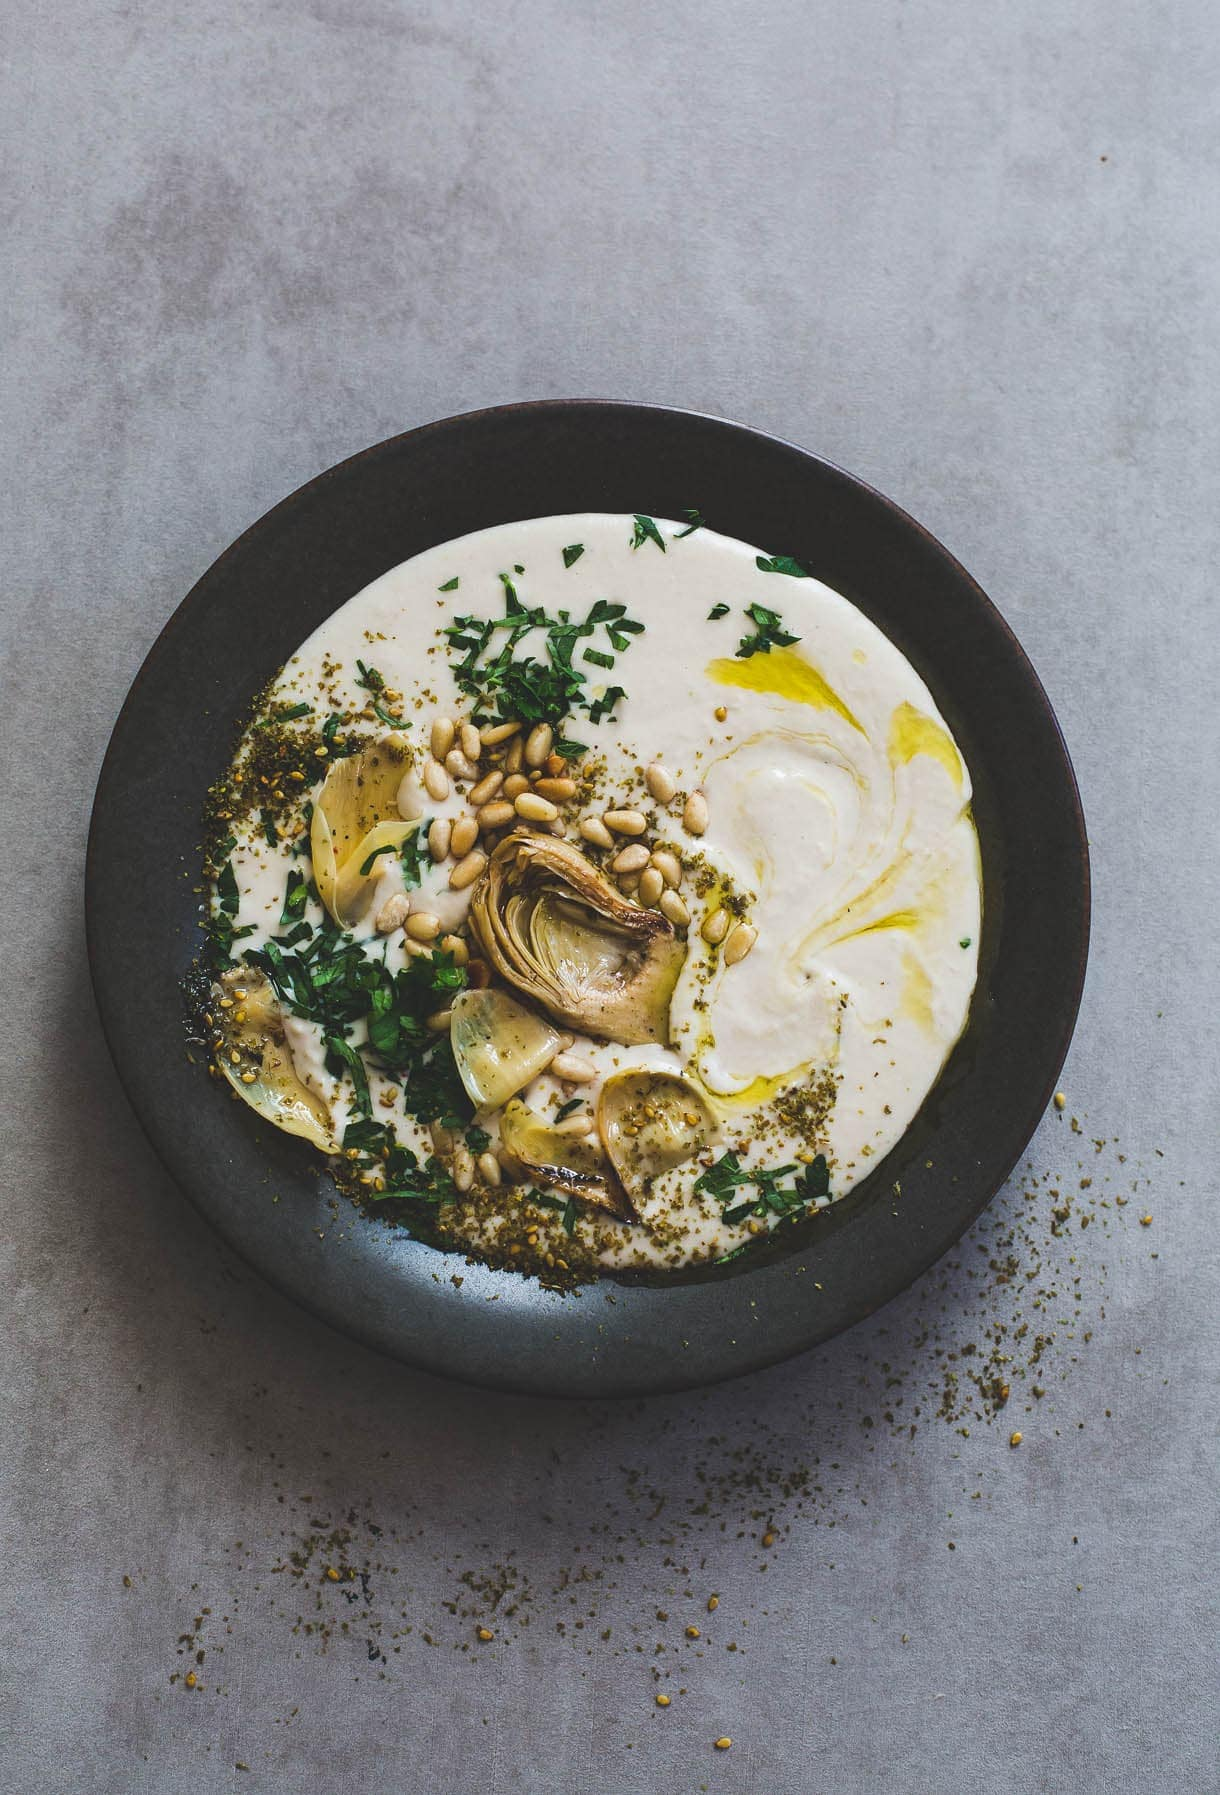 a plate of Silky White Bean Hummus with Artichokes and Pine Nuts in a black bowl